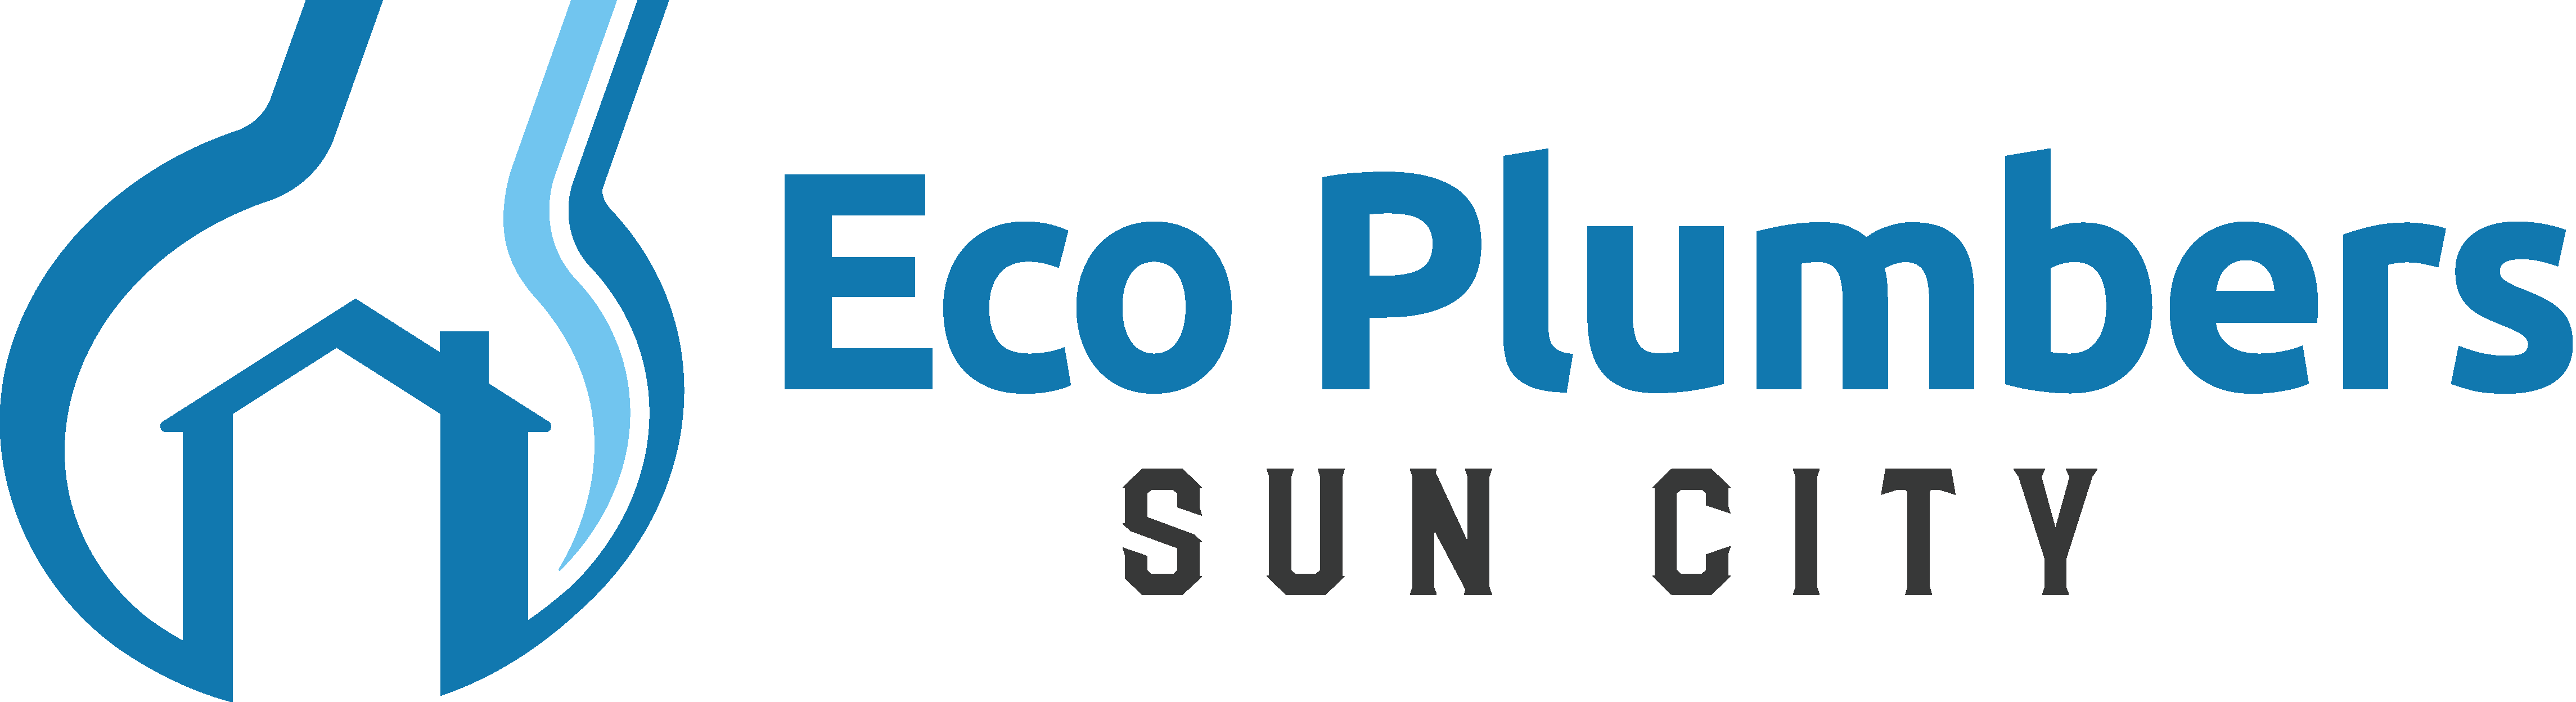 Plumber Sun City Az Are A Local Family Owned Plumbing Company With The Reputation For Fast Friendly And Personal Servi Plumber Sun City Az Plumbing Companies